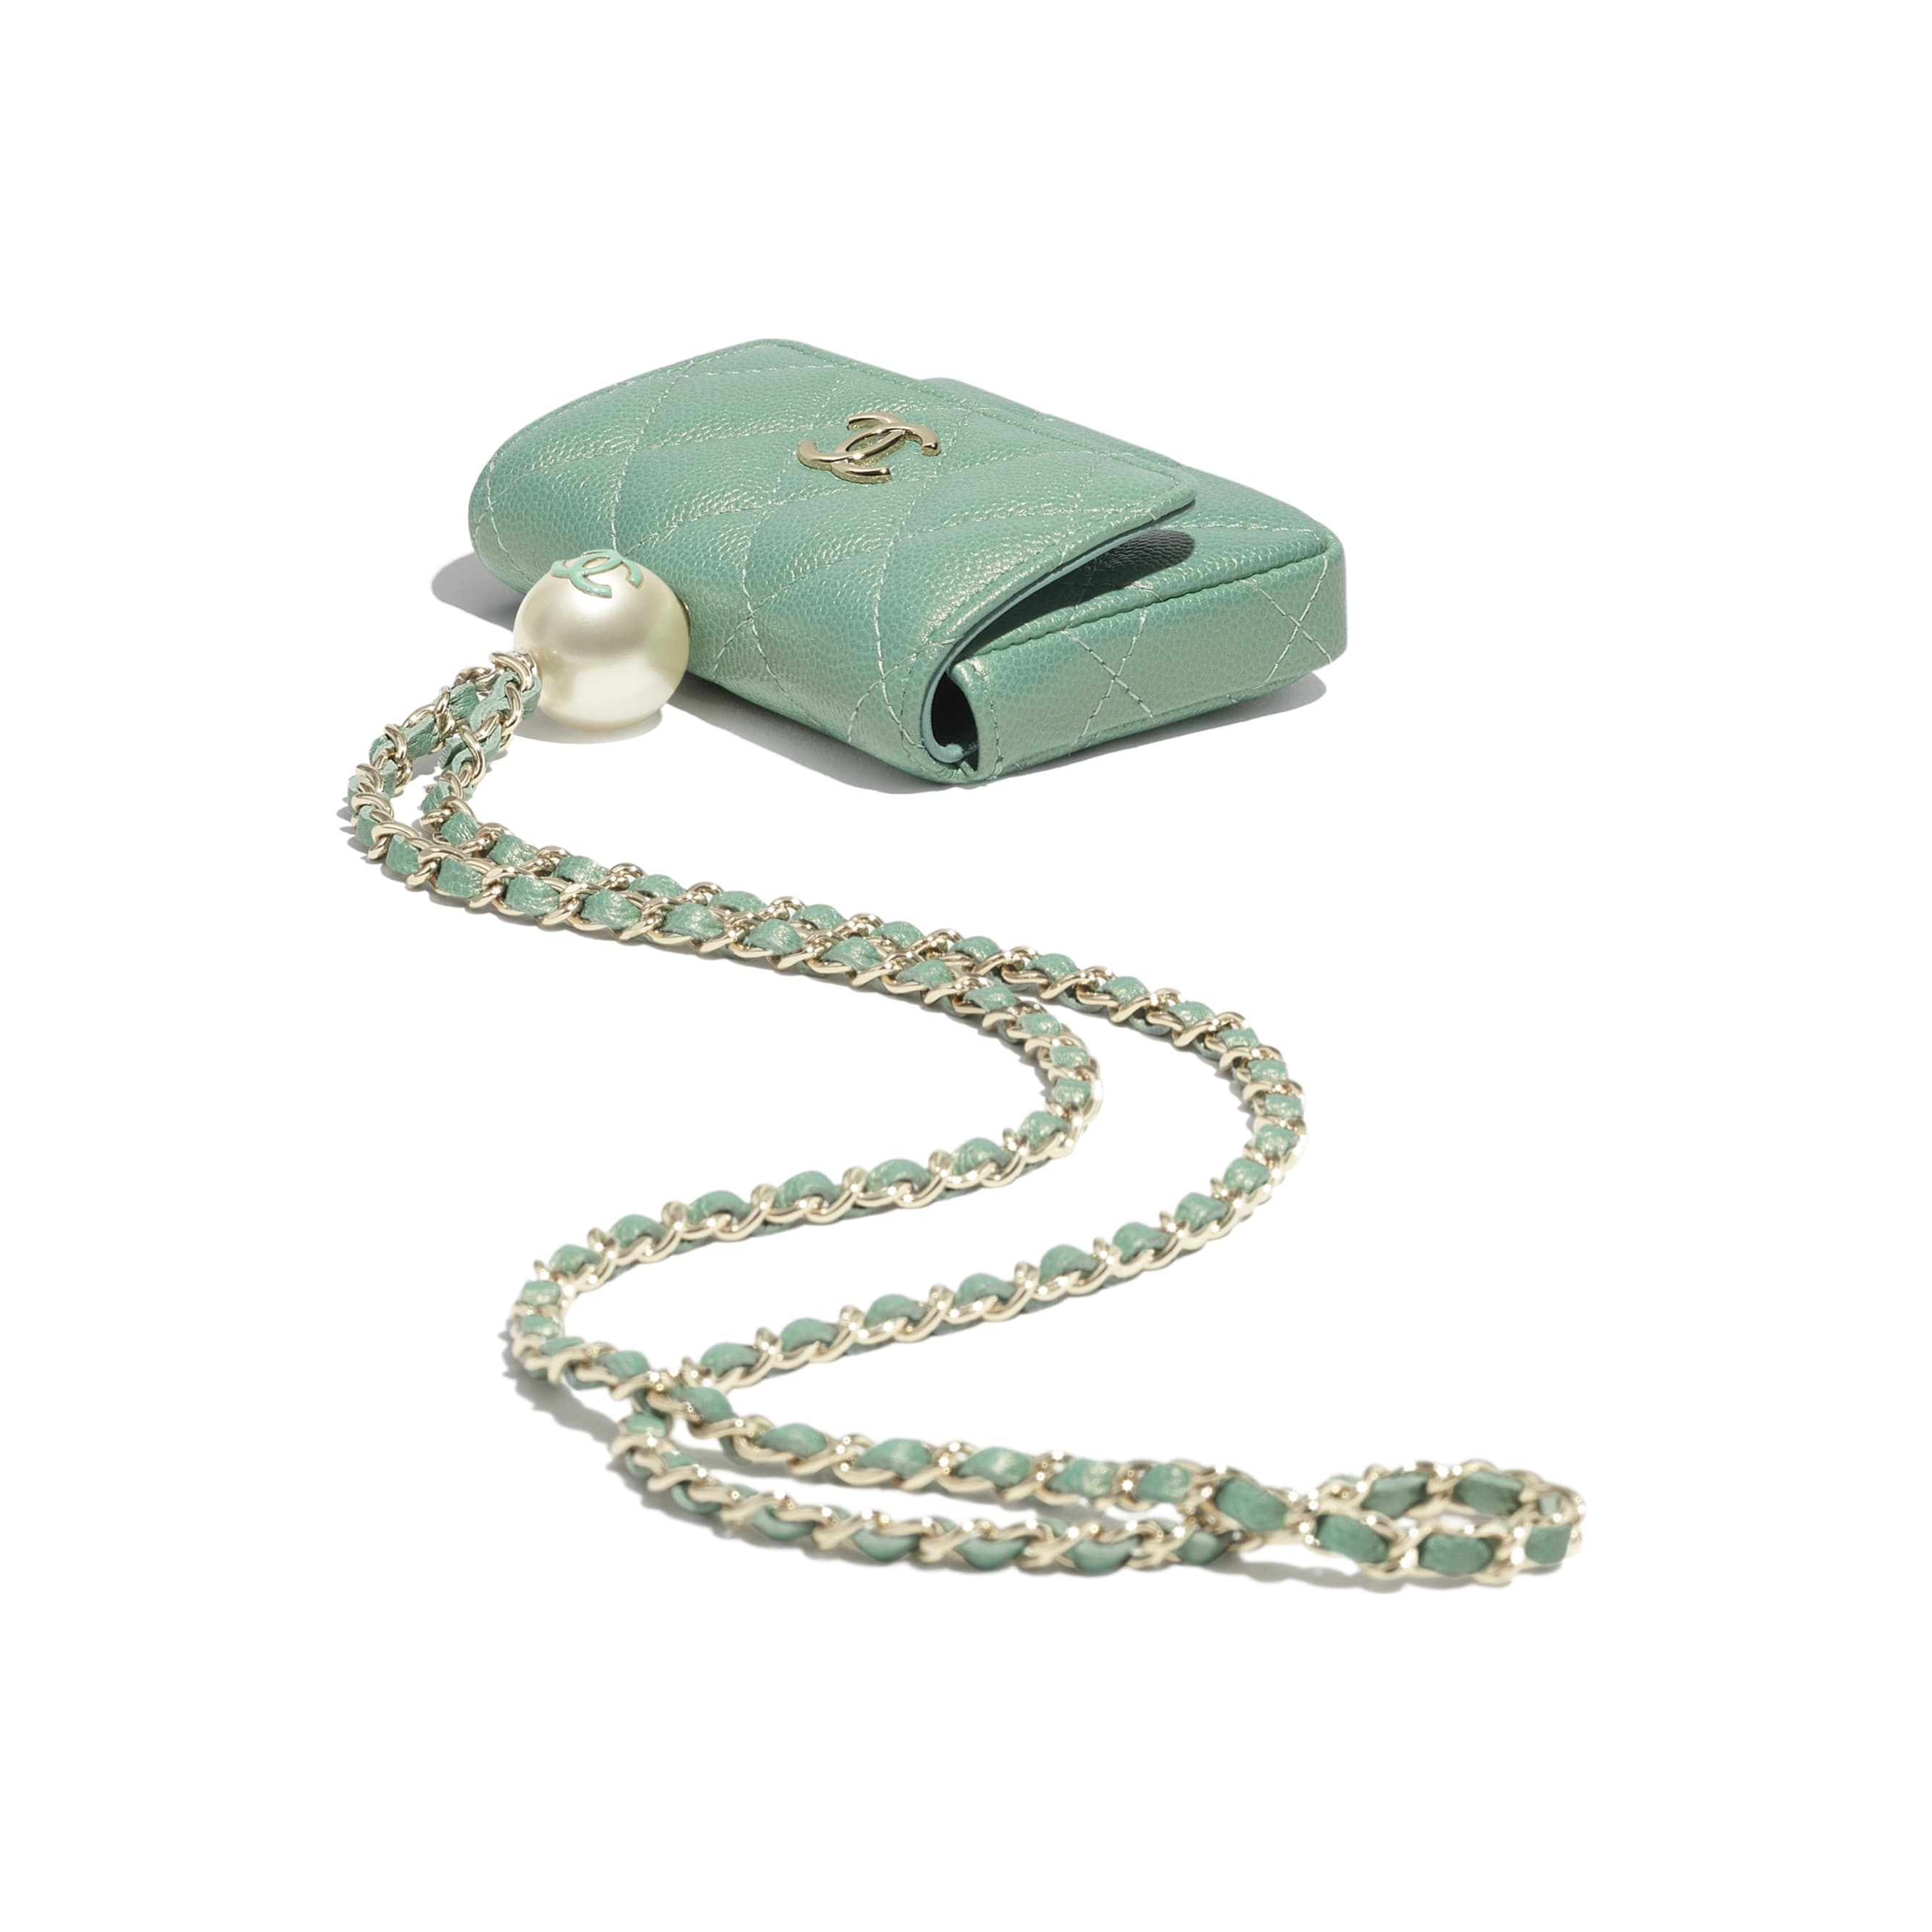 Flap Coin Purse with Chain - Green - Iridescent Grained Calfskin, Imitation Pearls & Gold-Tone Metal - CHANEL - Extra view - see standard sized version